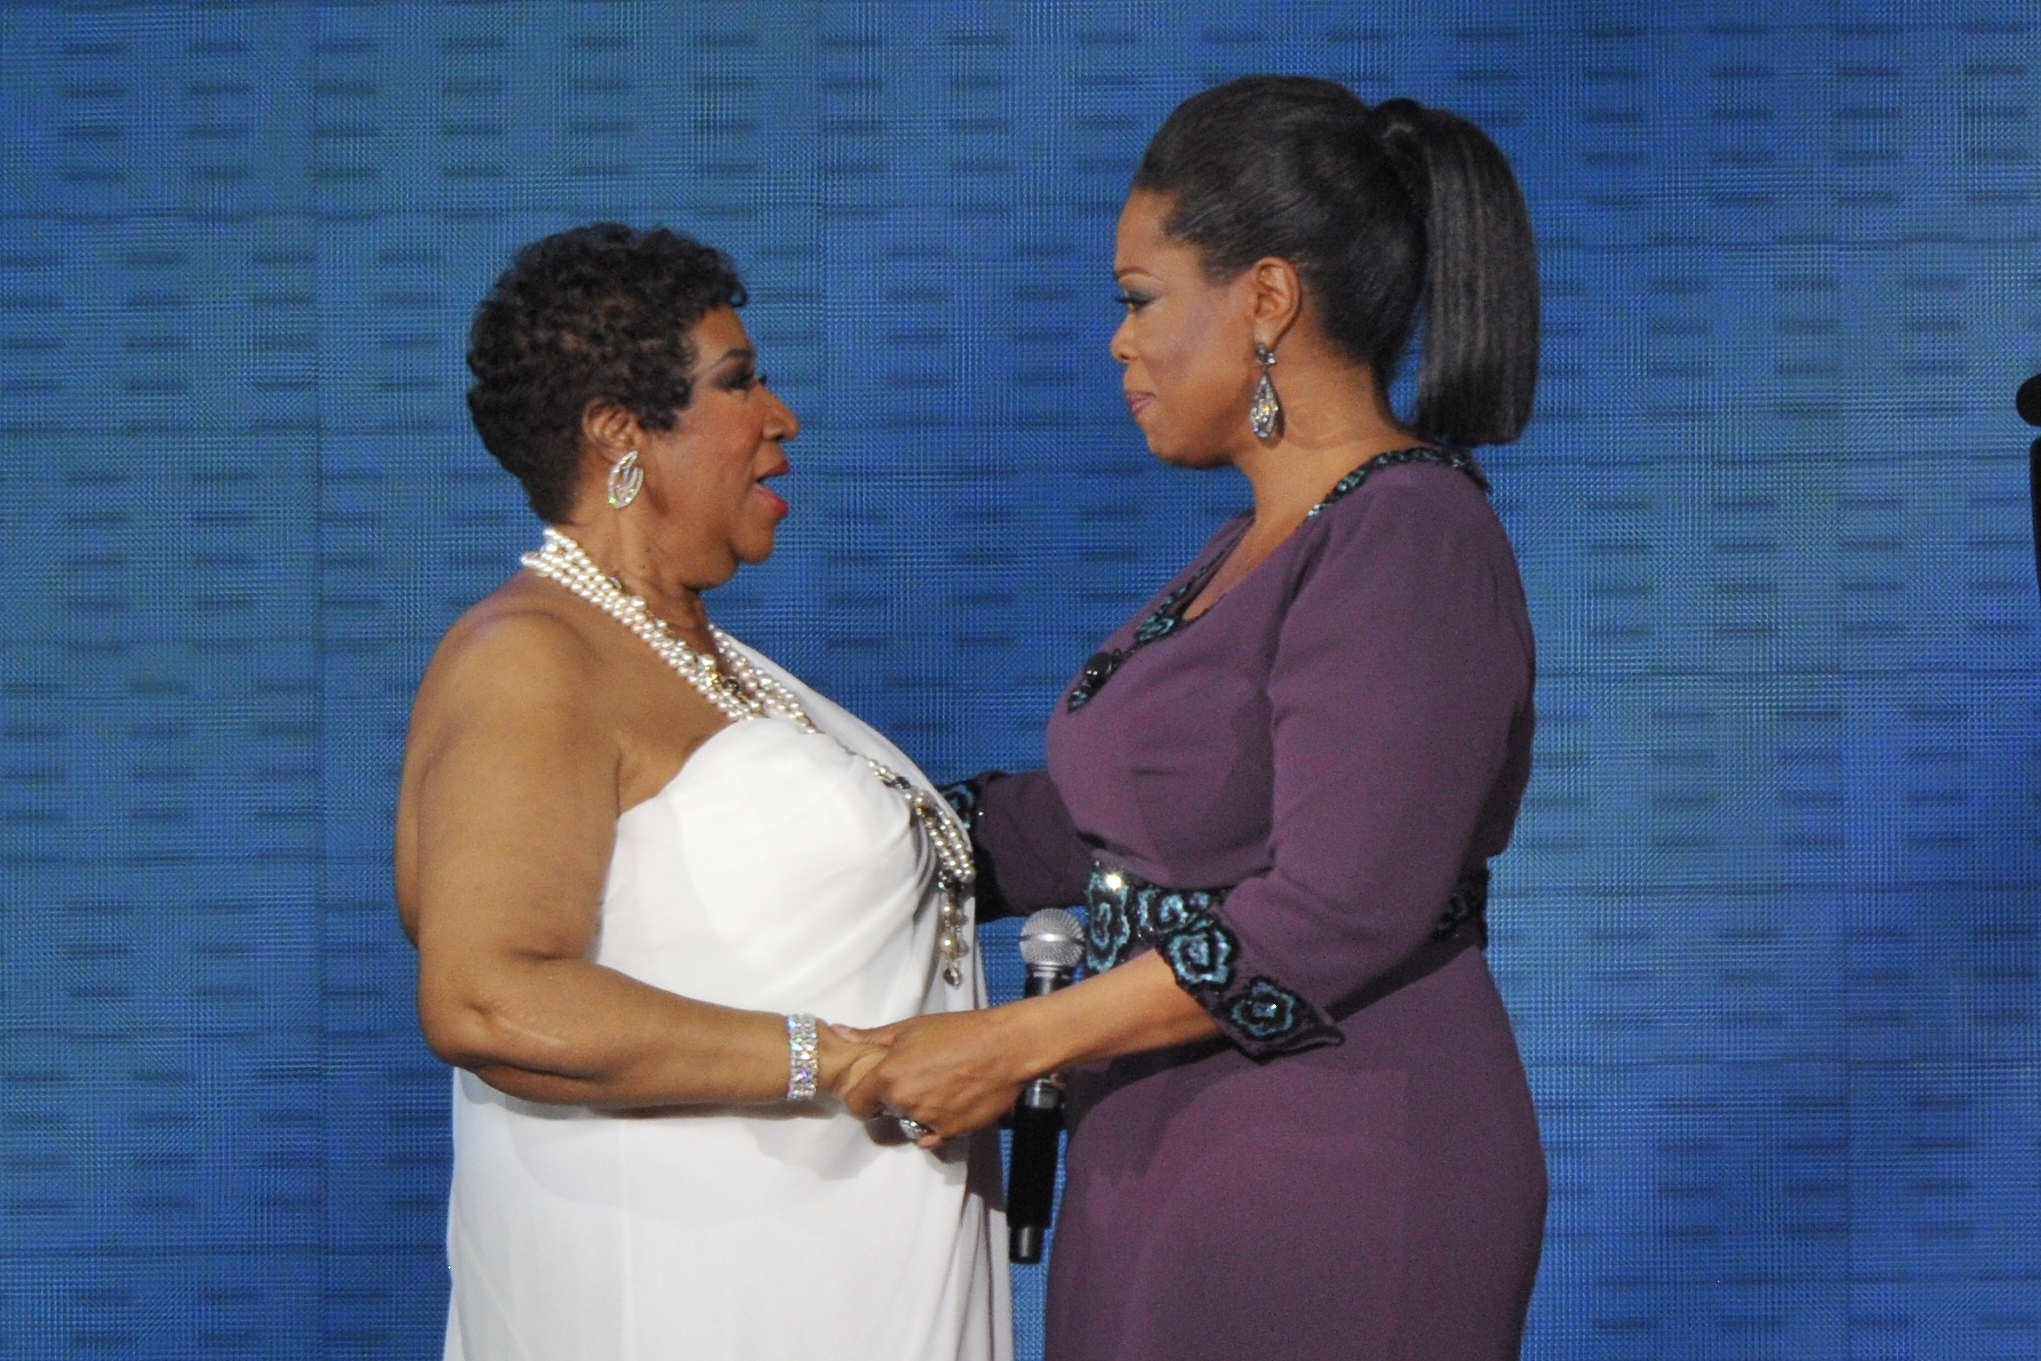 Aretha Franklin and Oprah Winfrey during 'Surprise Oprah! A Farewell Spectacular' at the United Center in Chicago, Illinois. (When: May 17 2011. Credit: Ray Garbo/WENN.com)